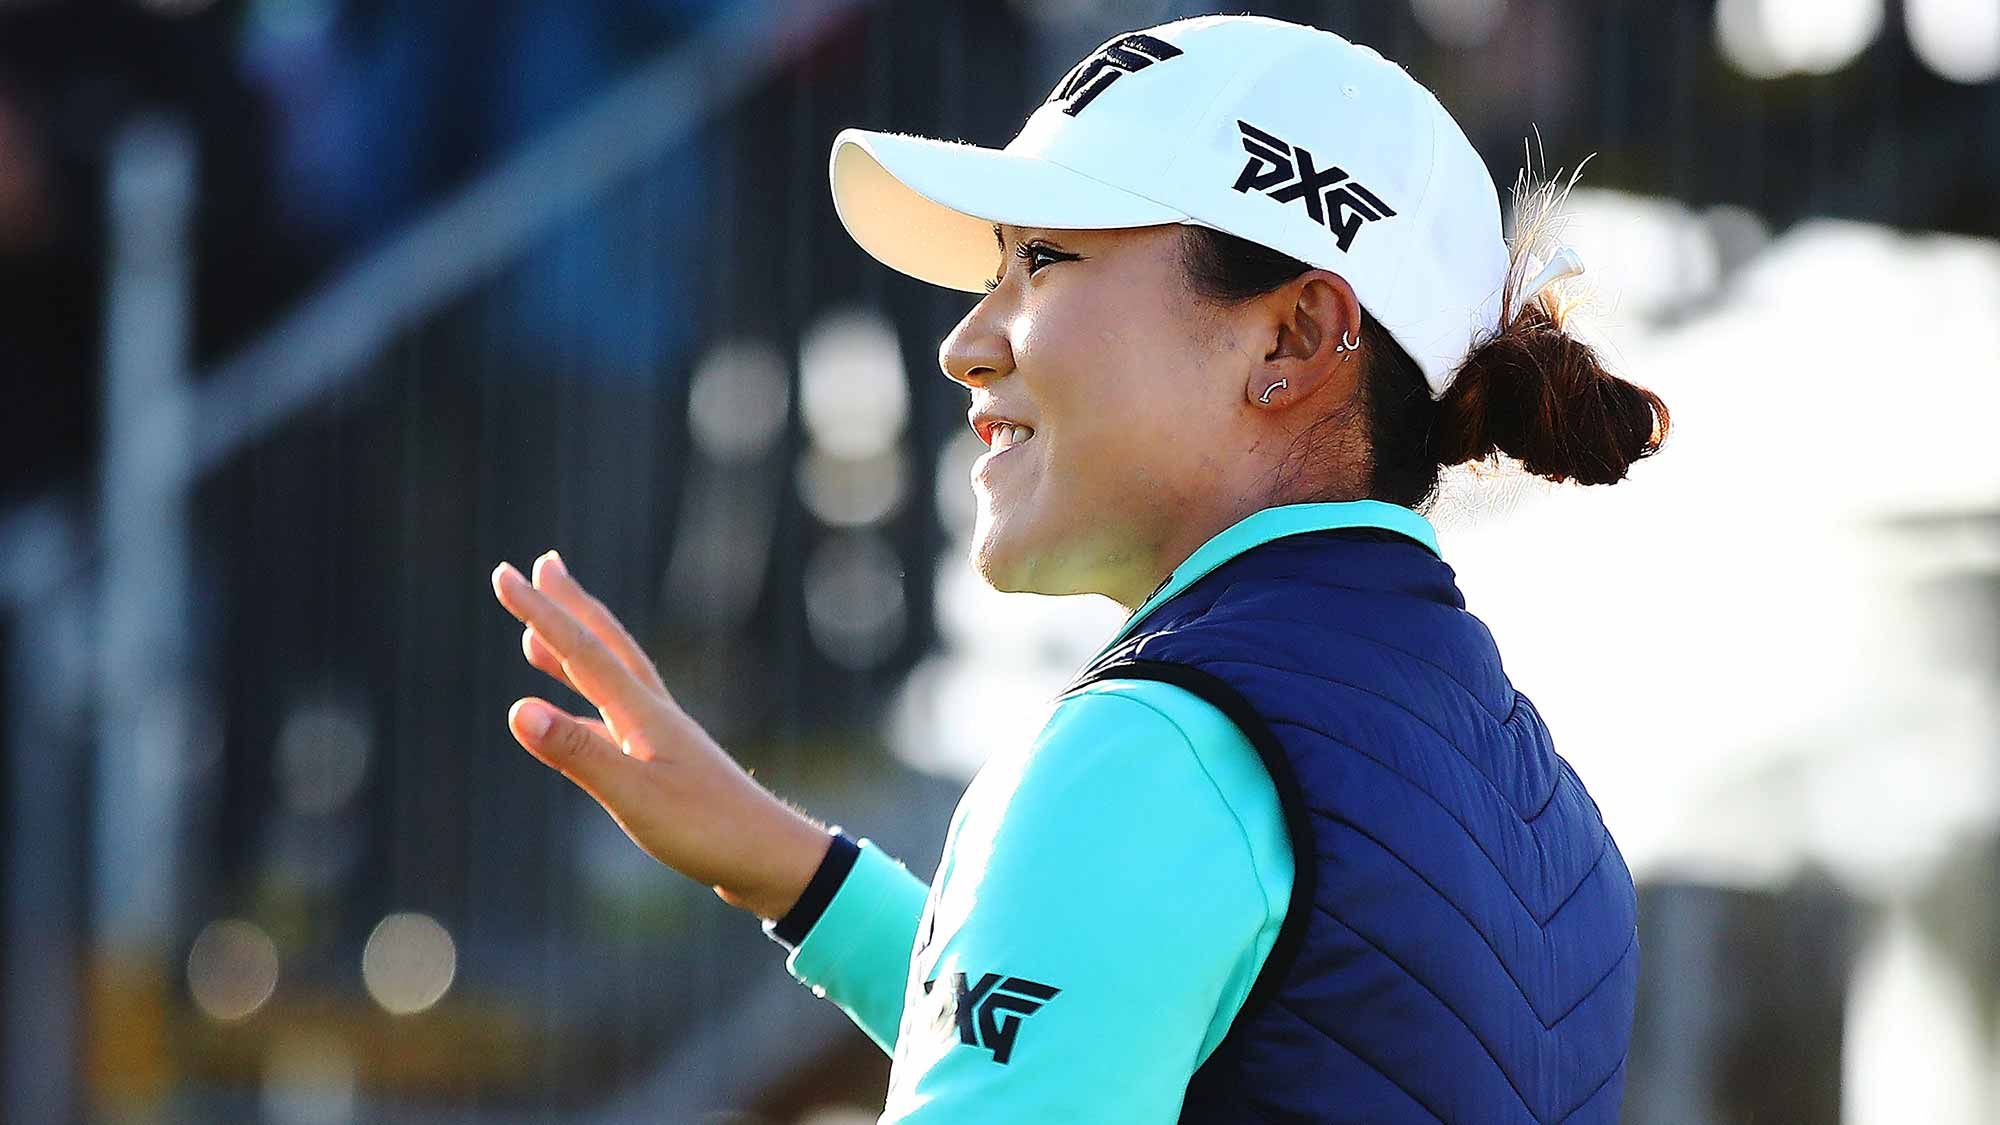 Lydia Ko of New Zealand acknowledges the crowd during day one of the McKayson New Zealand Women's Open at Windross Farm